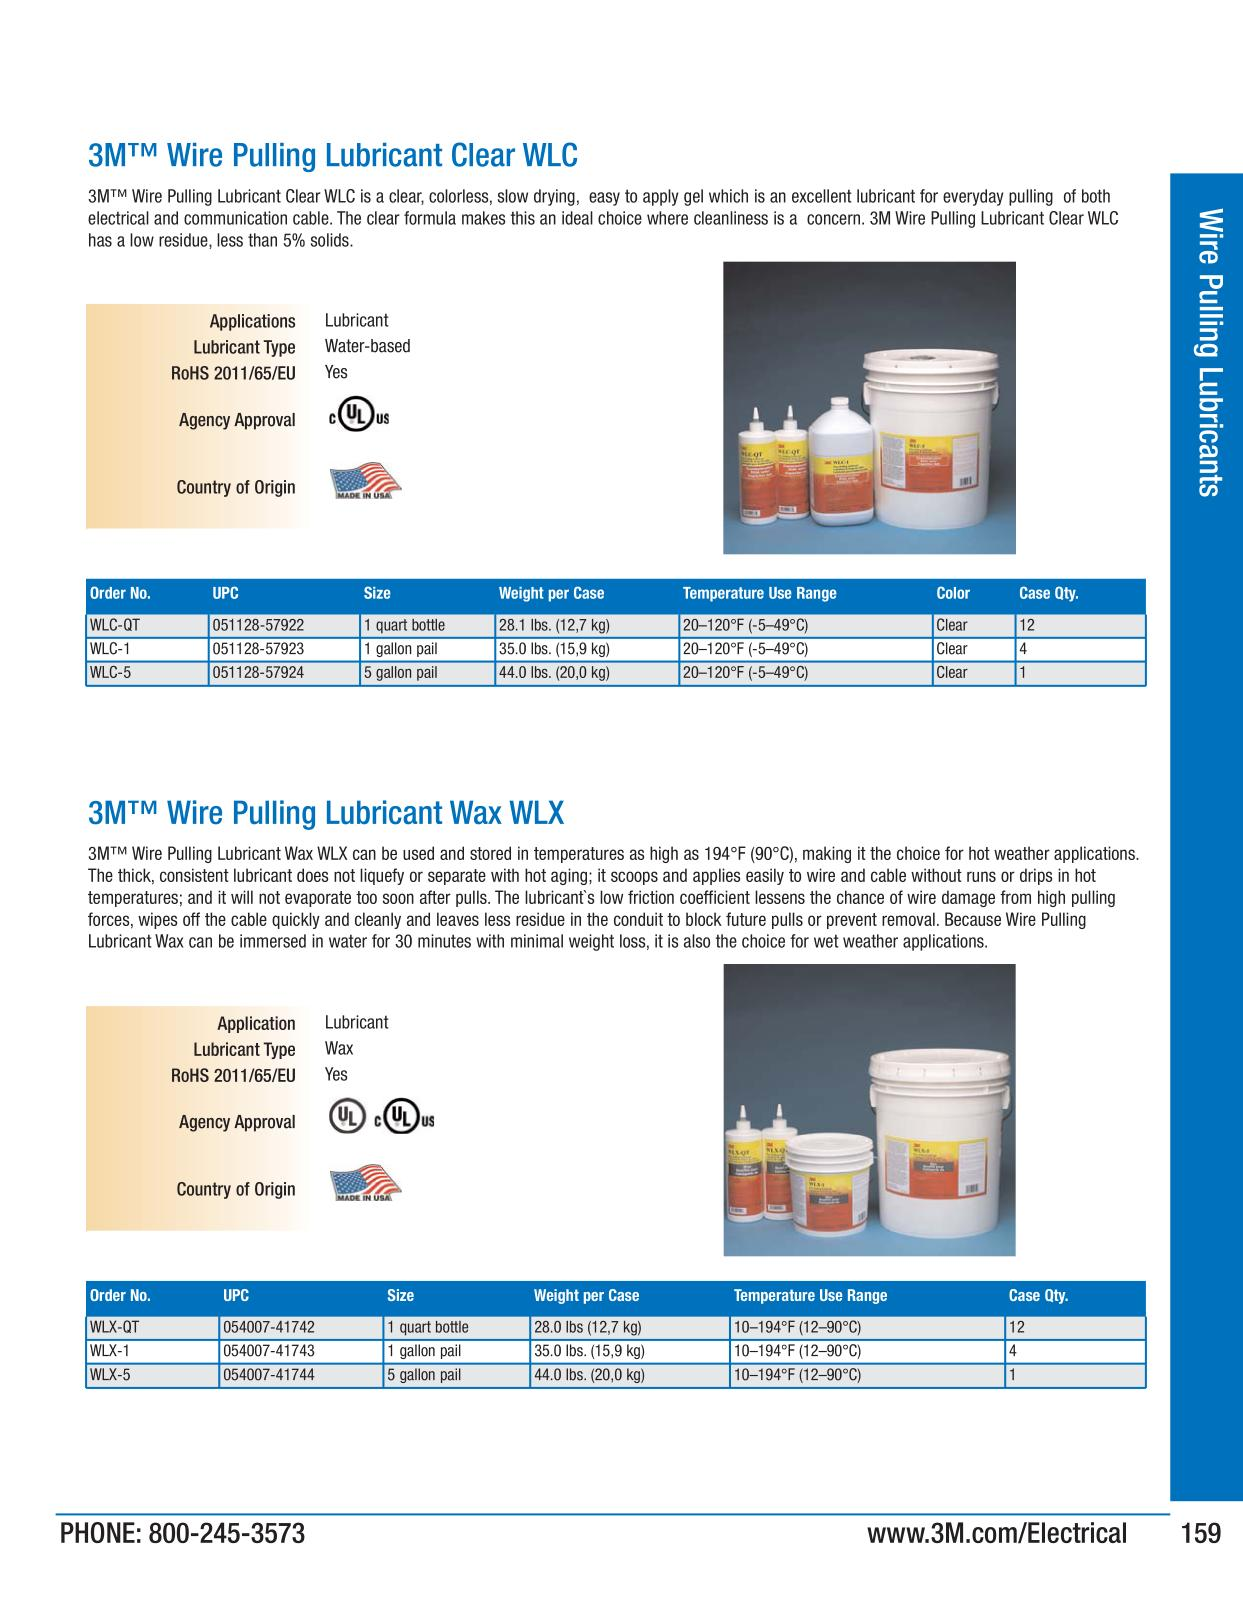 Wire Pulling Lubricants - 3M Electrical Products Page 159